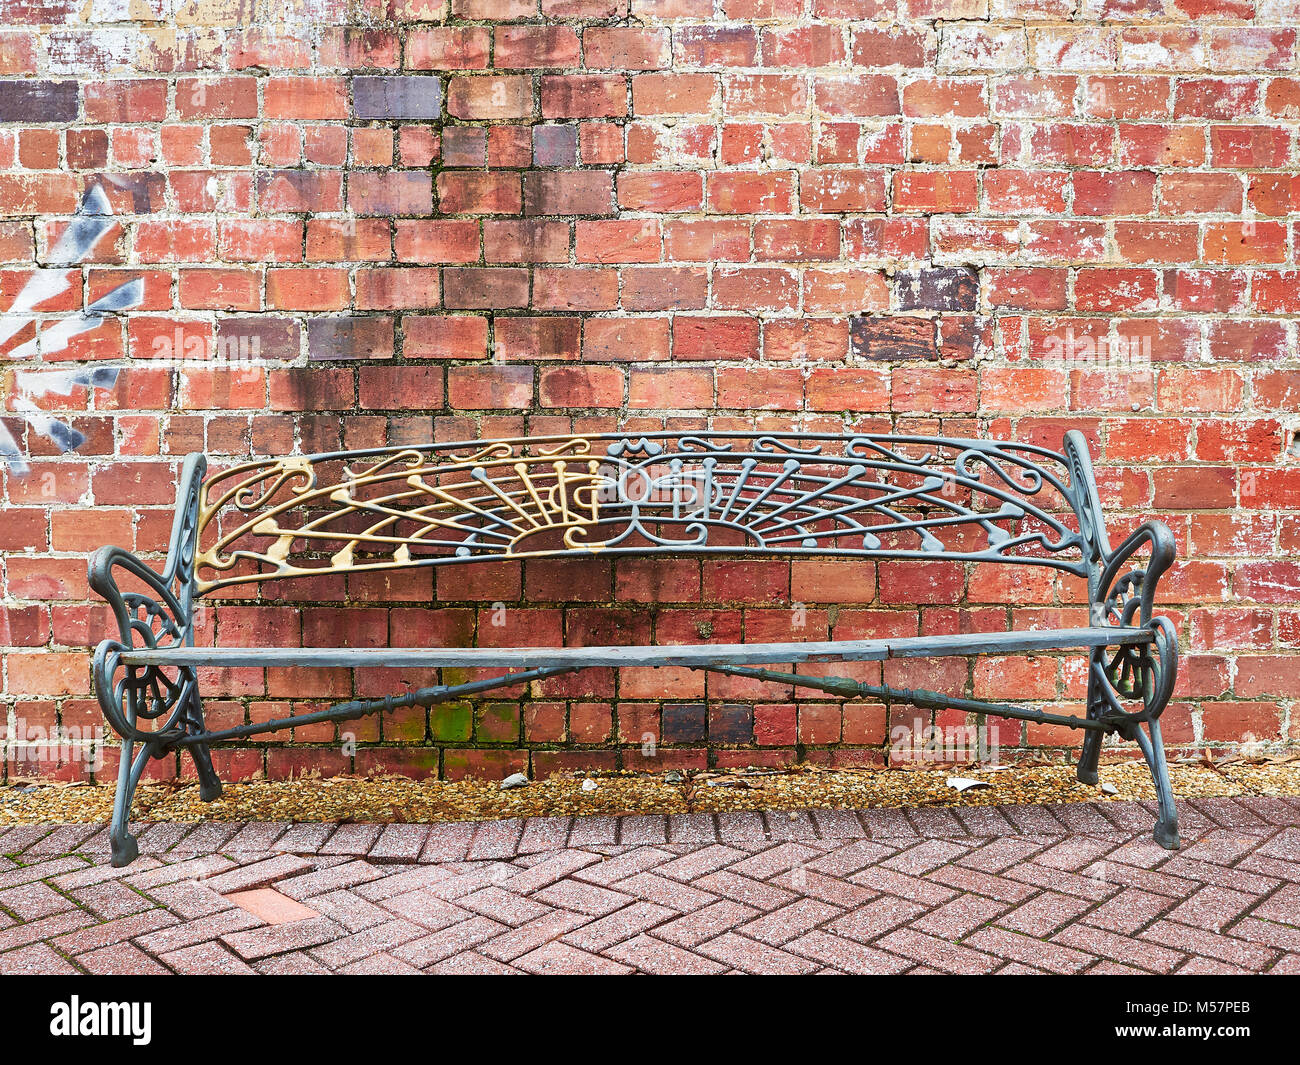 Single iron metal unoccupied park bench against an old brick wall with brick pavers in front. - Stock Image